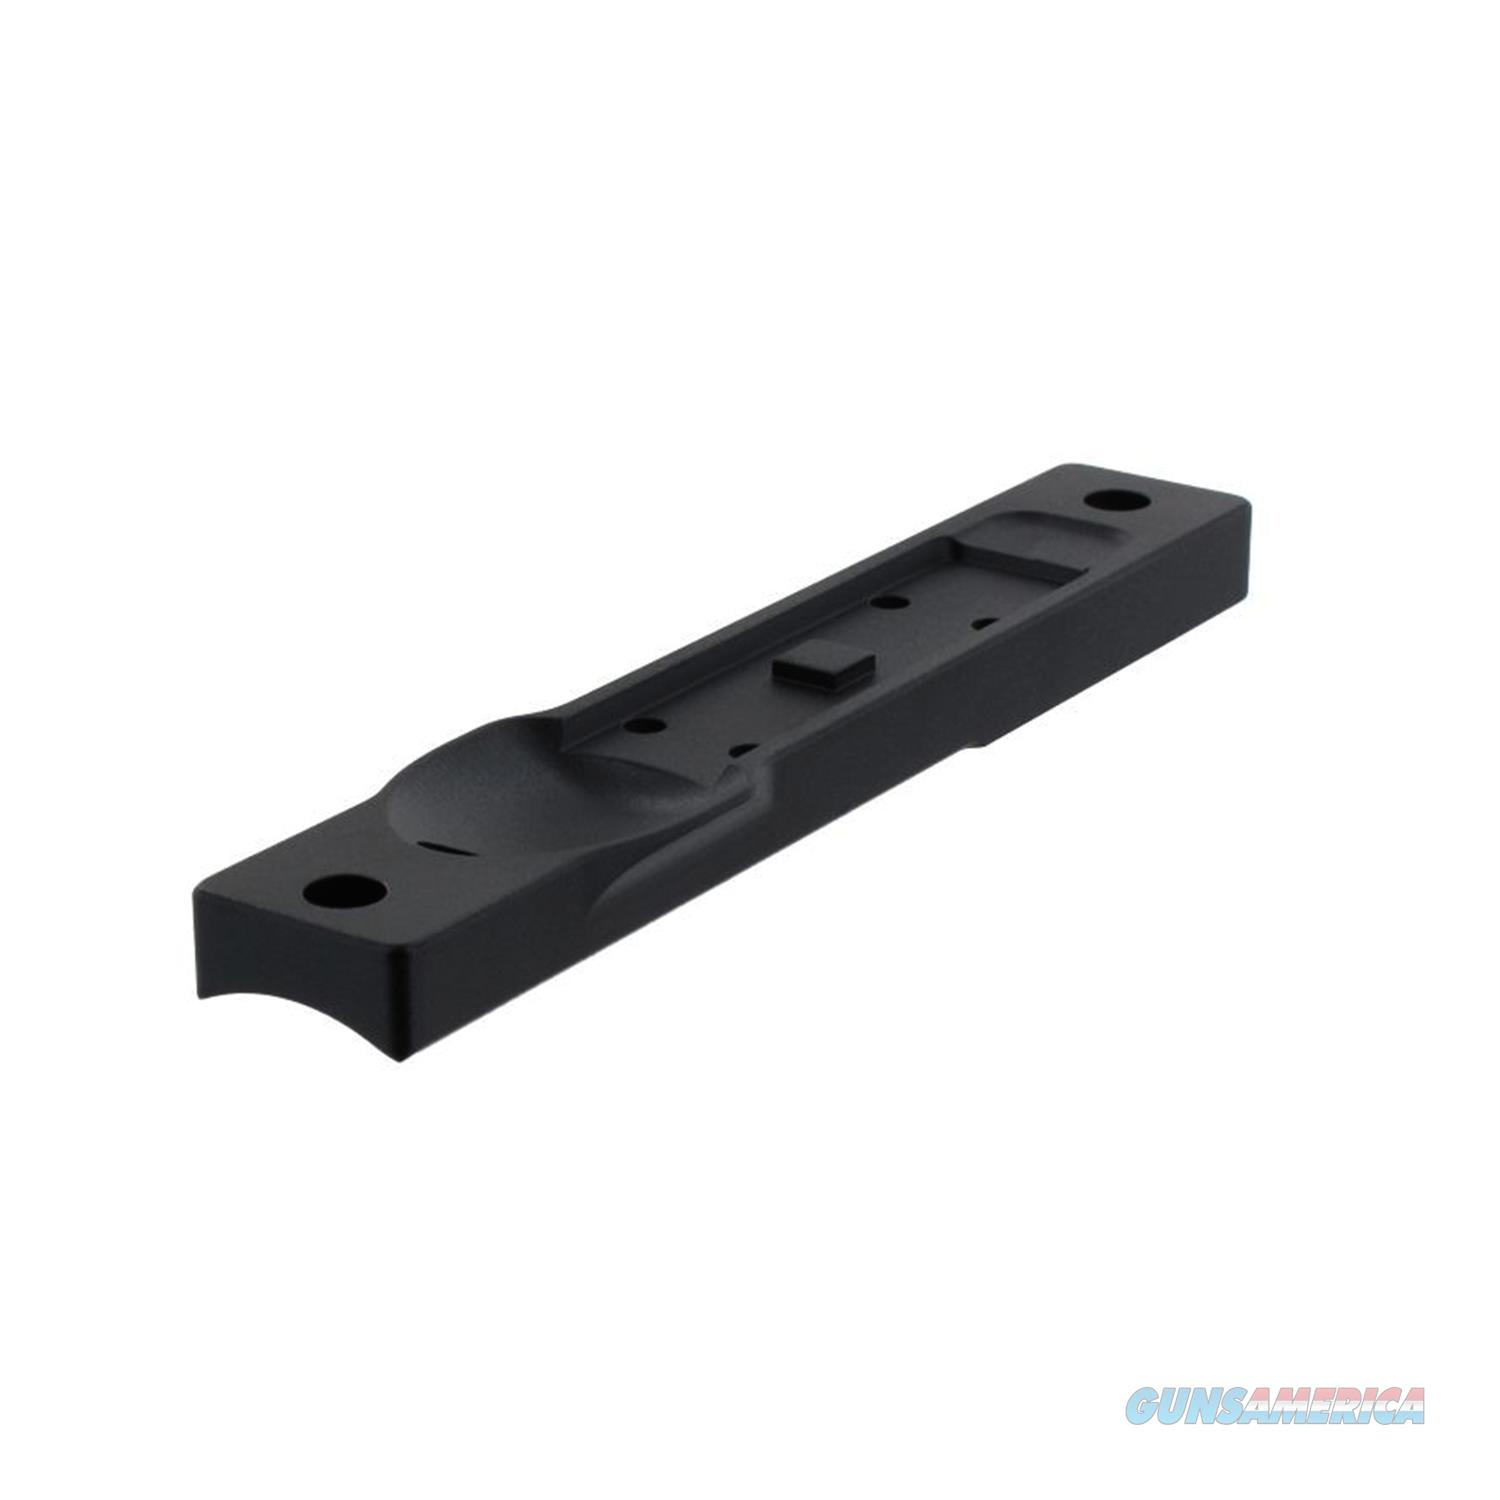 Aimpoint Micro Rail 200257  Non-Guns > Gun Parts > Misc > Rifles